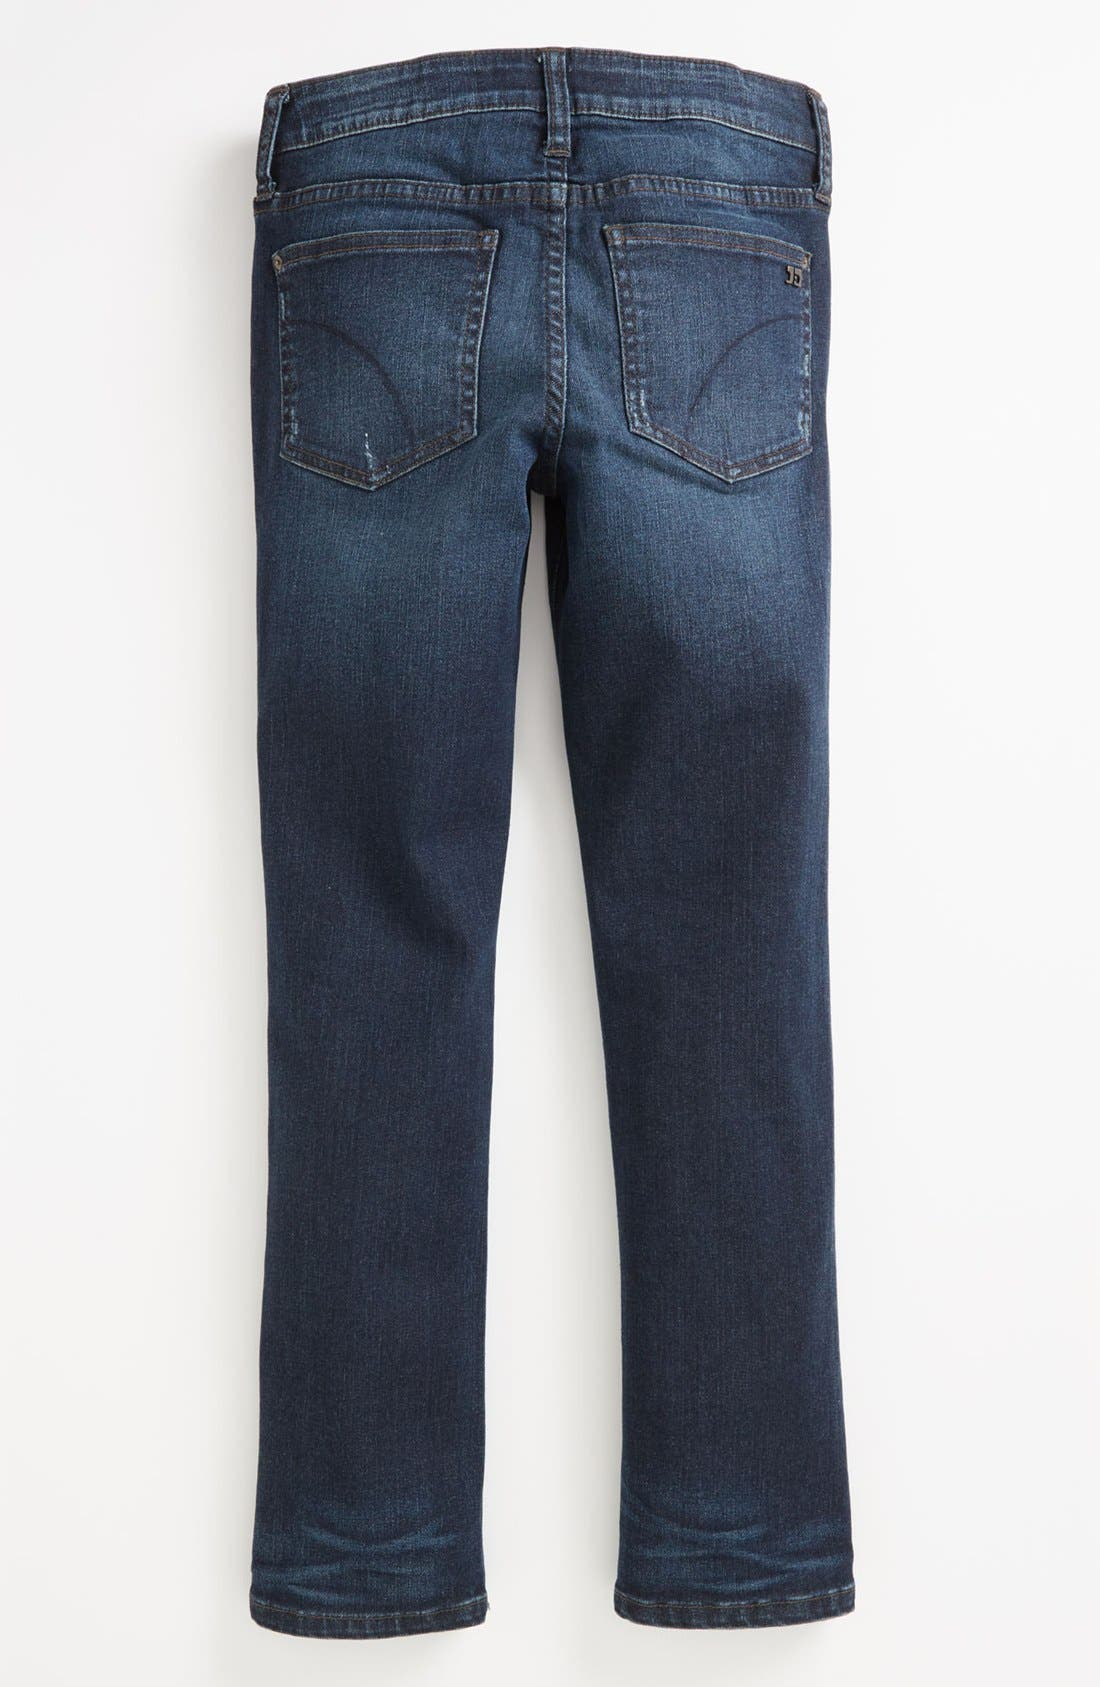 Alternate Image 1 Selected - Joe's 'Brixton' Straight Leg Jeans (Big Boys)